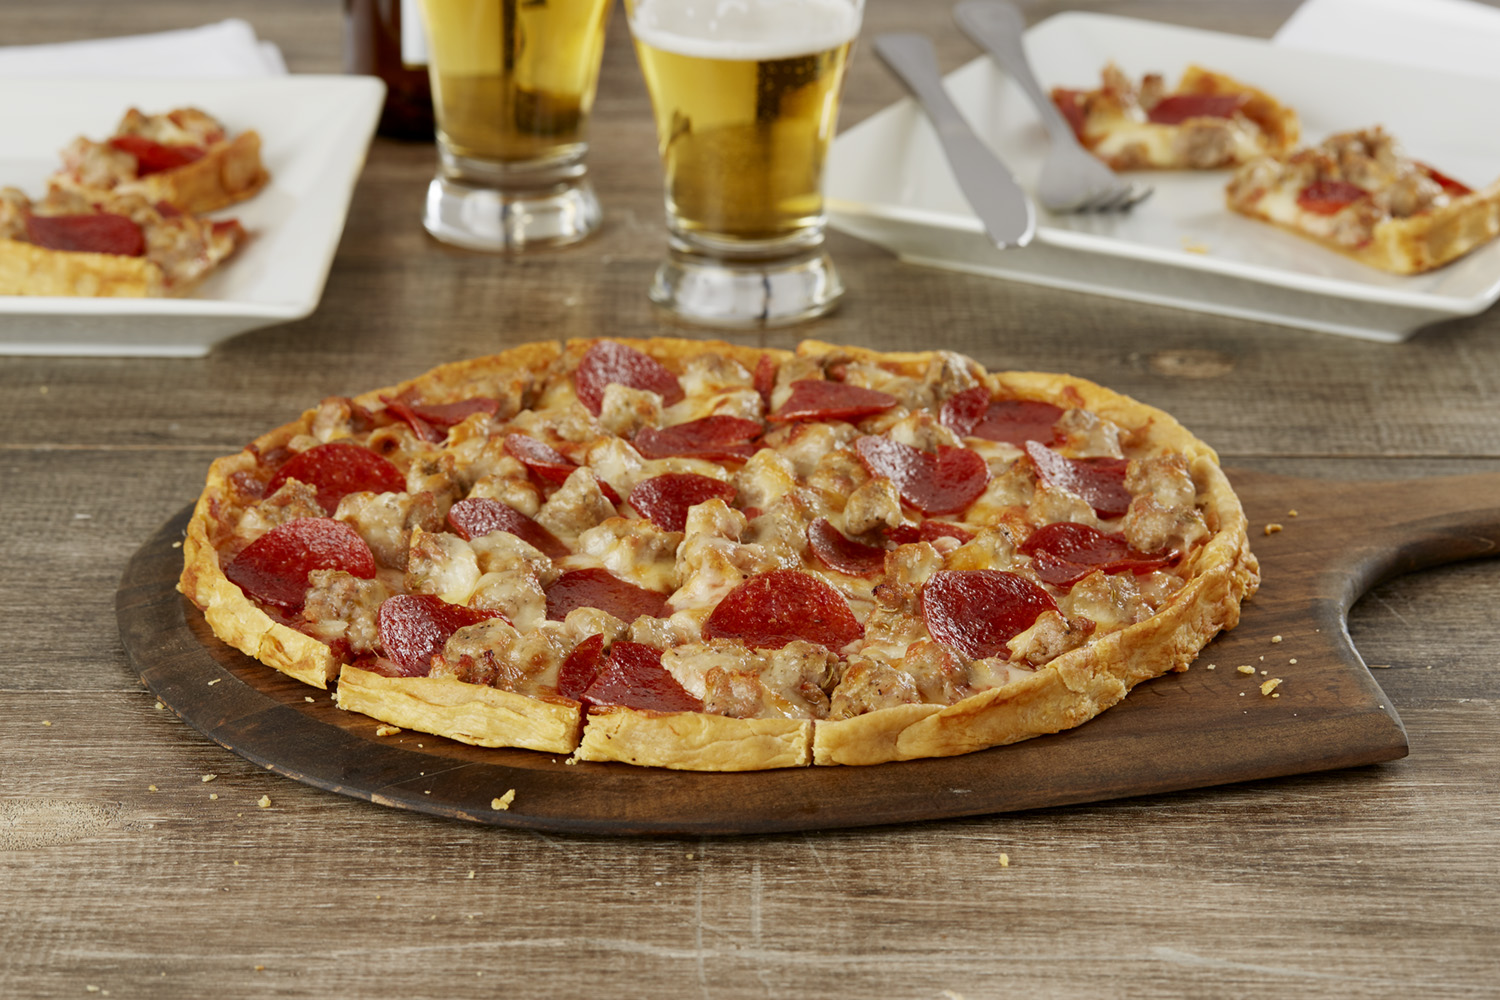 A thin-crust, square-cut tavern-style pizza with pepperoni and sausage on a wooden board with two glasses of beer behind it.